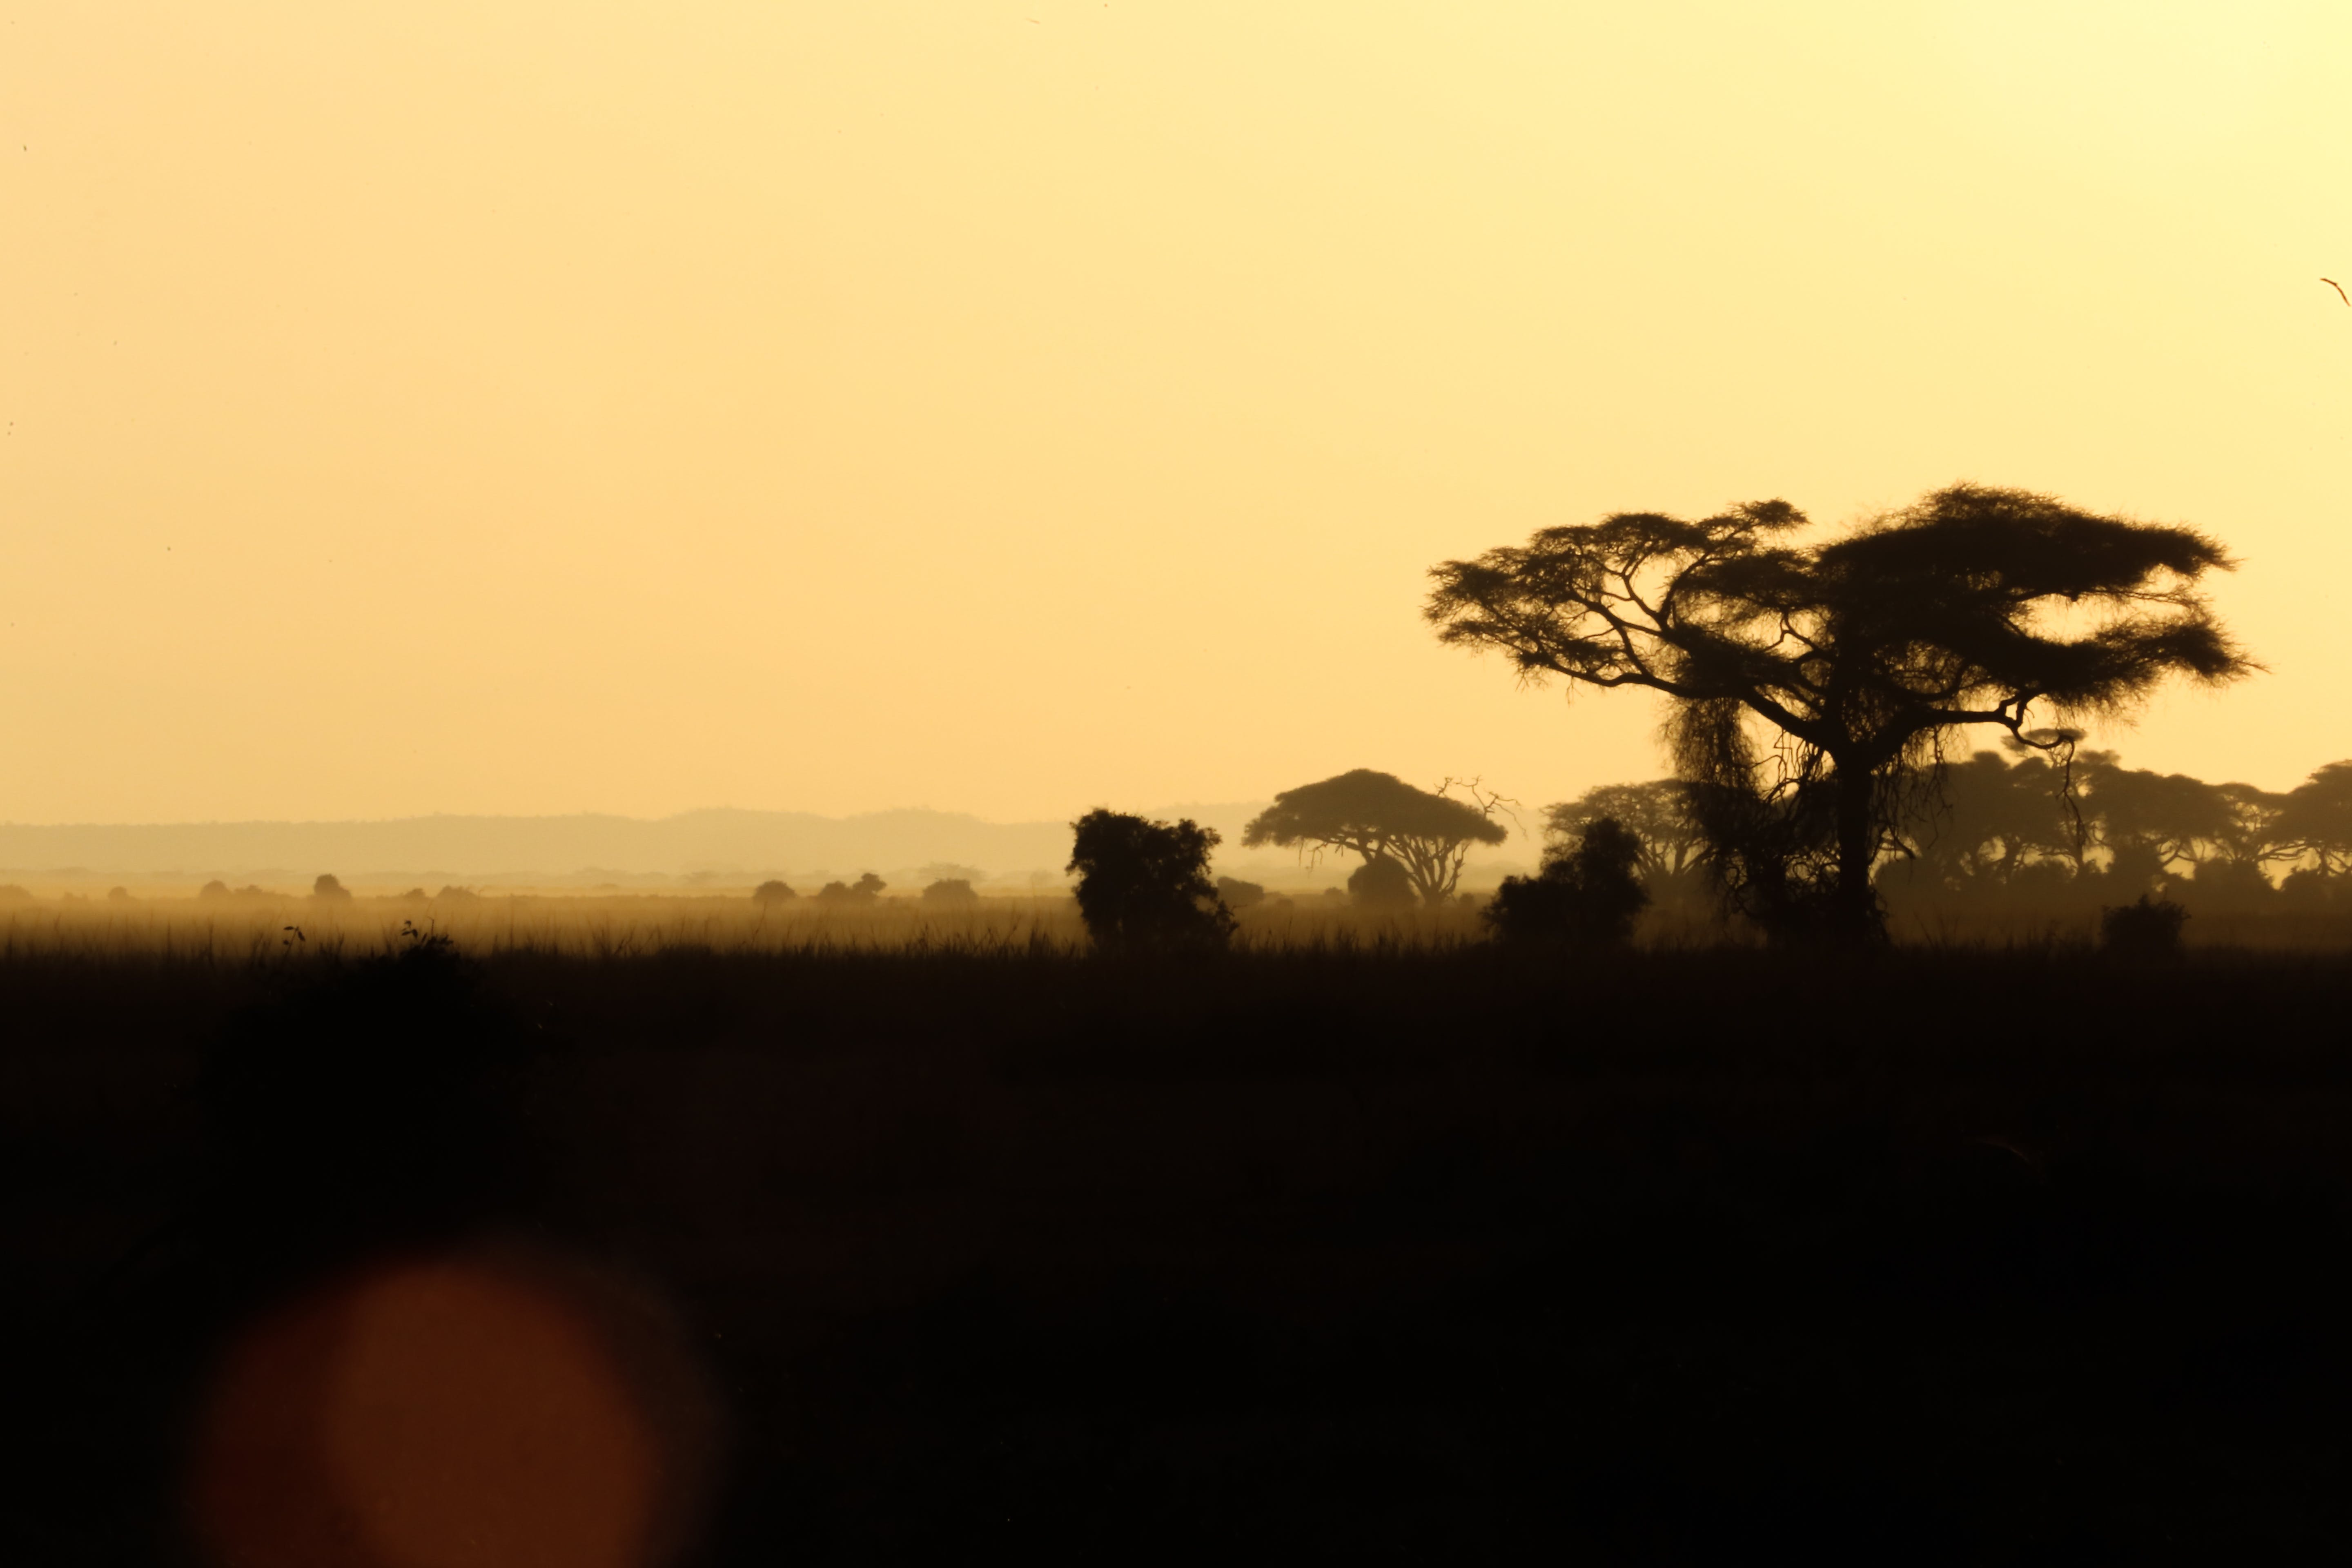 Free stock photo of landscape, sky, photography, africa